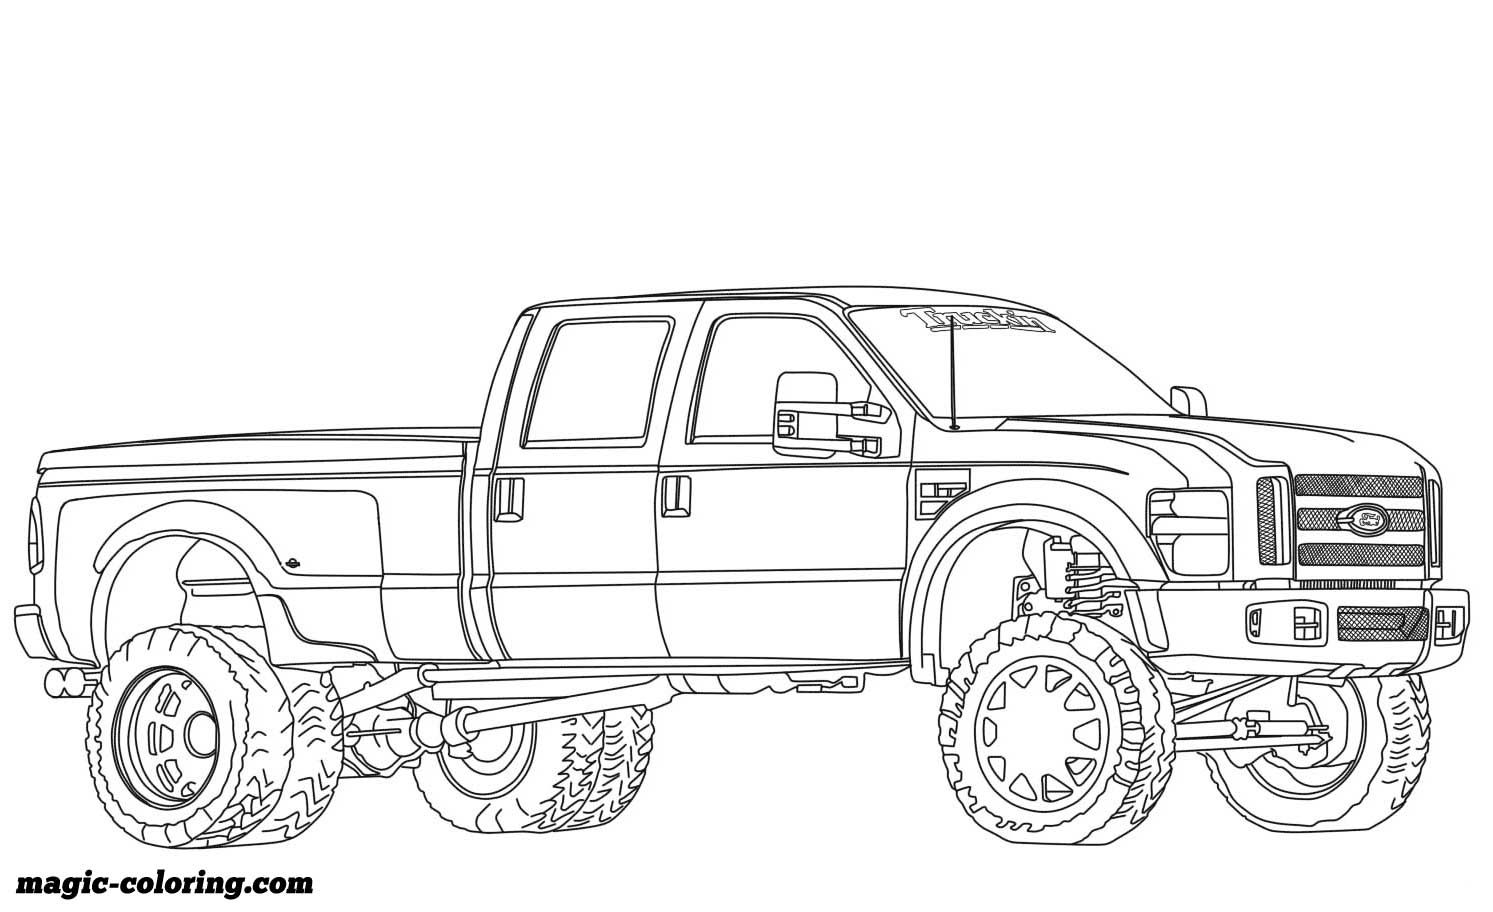 2012 Ford F350 Dually Lifted Coloring Page Truck Coloring Pages Cars Coloring Pages Sports Coloring Pages